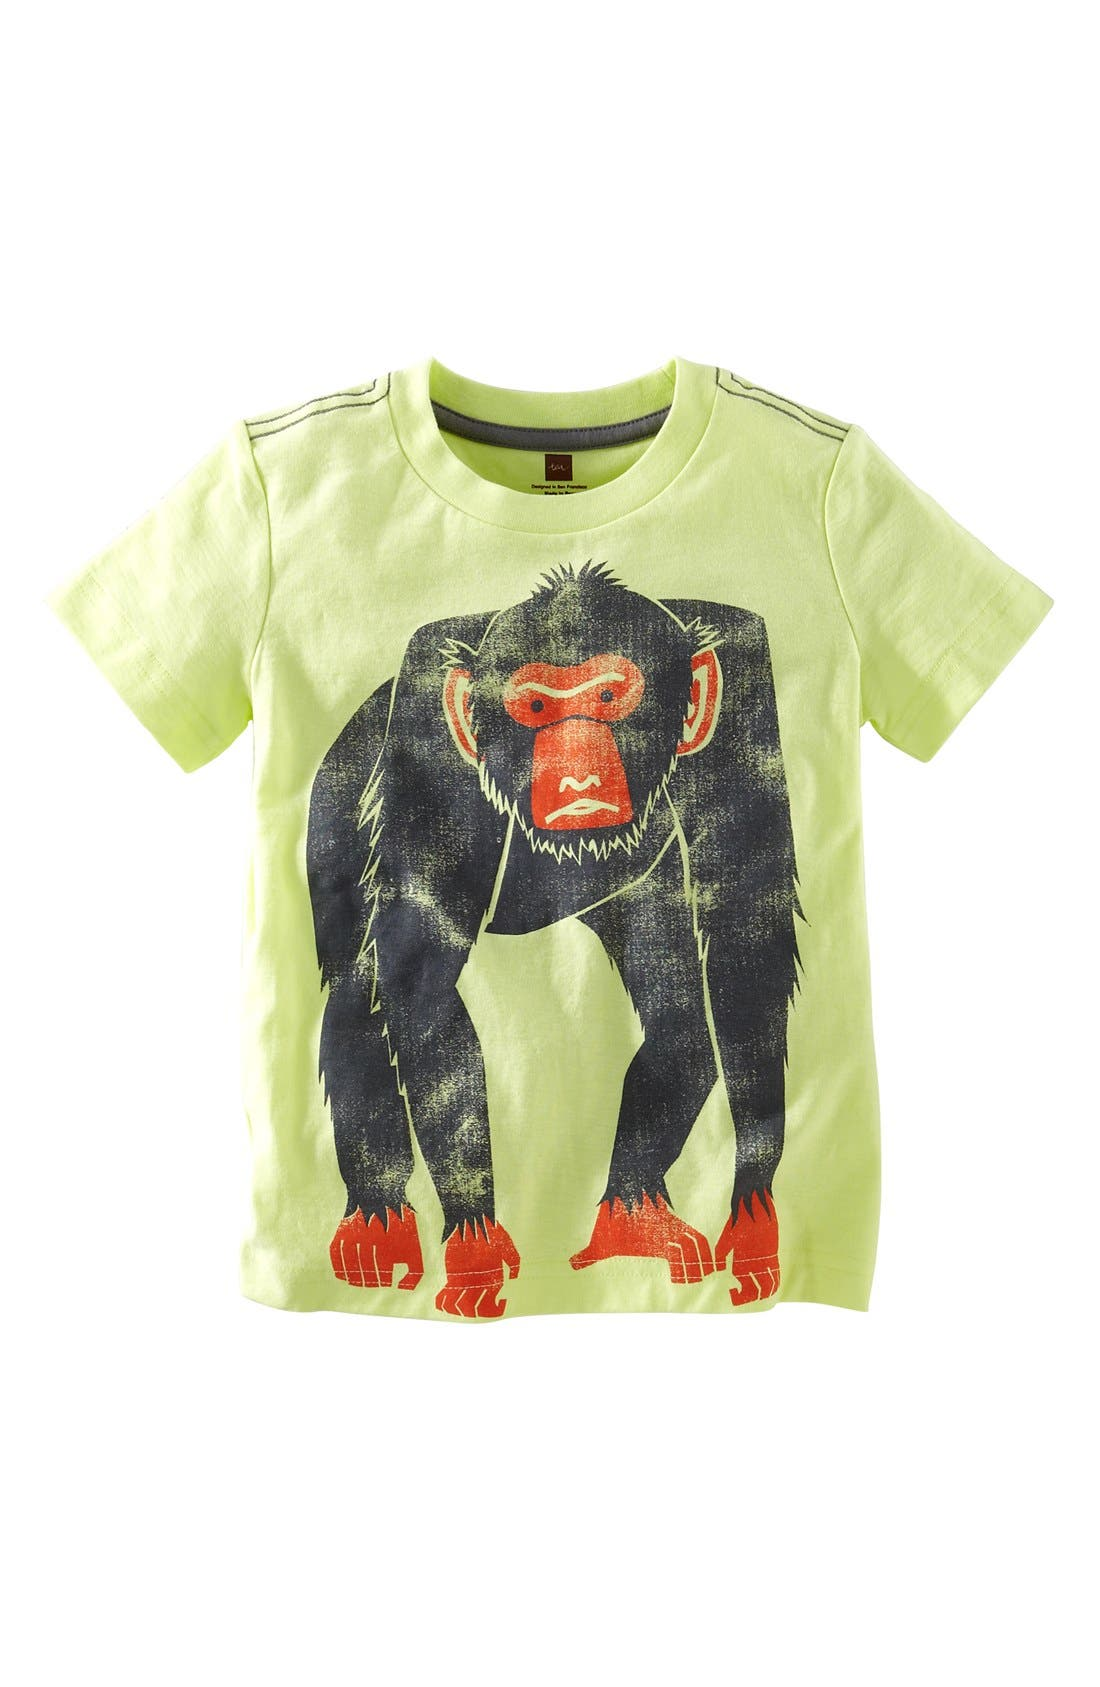 Alternate Image 1 Selected - Tea Collection 'Barbary Ape' T-Shirt (Toddler Boys)